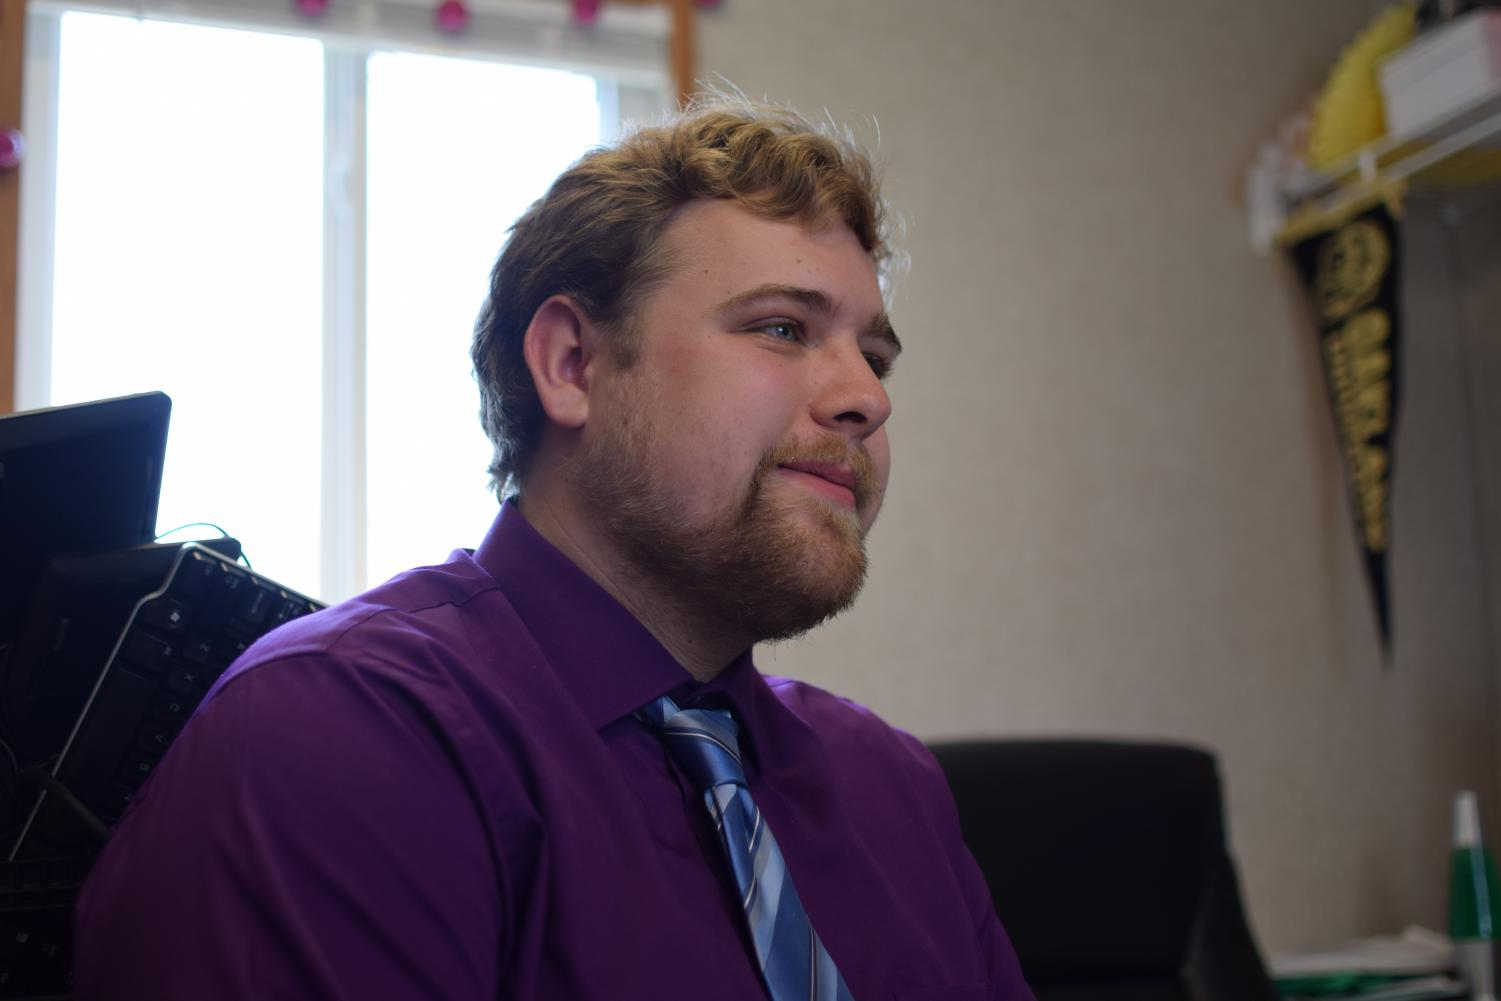 Ryan Fox, who has been a very active member of OUSC legislature in past years, was elected President.